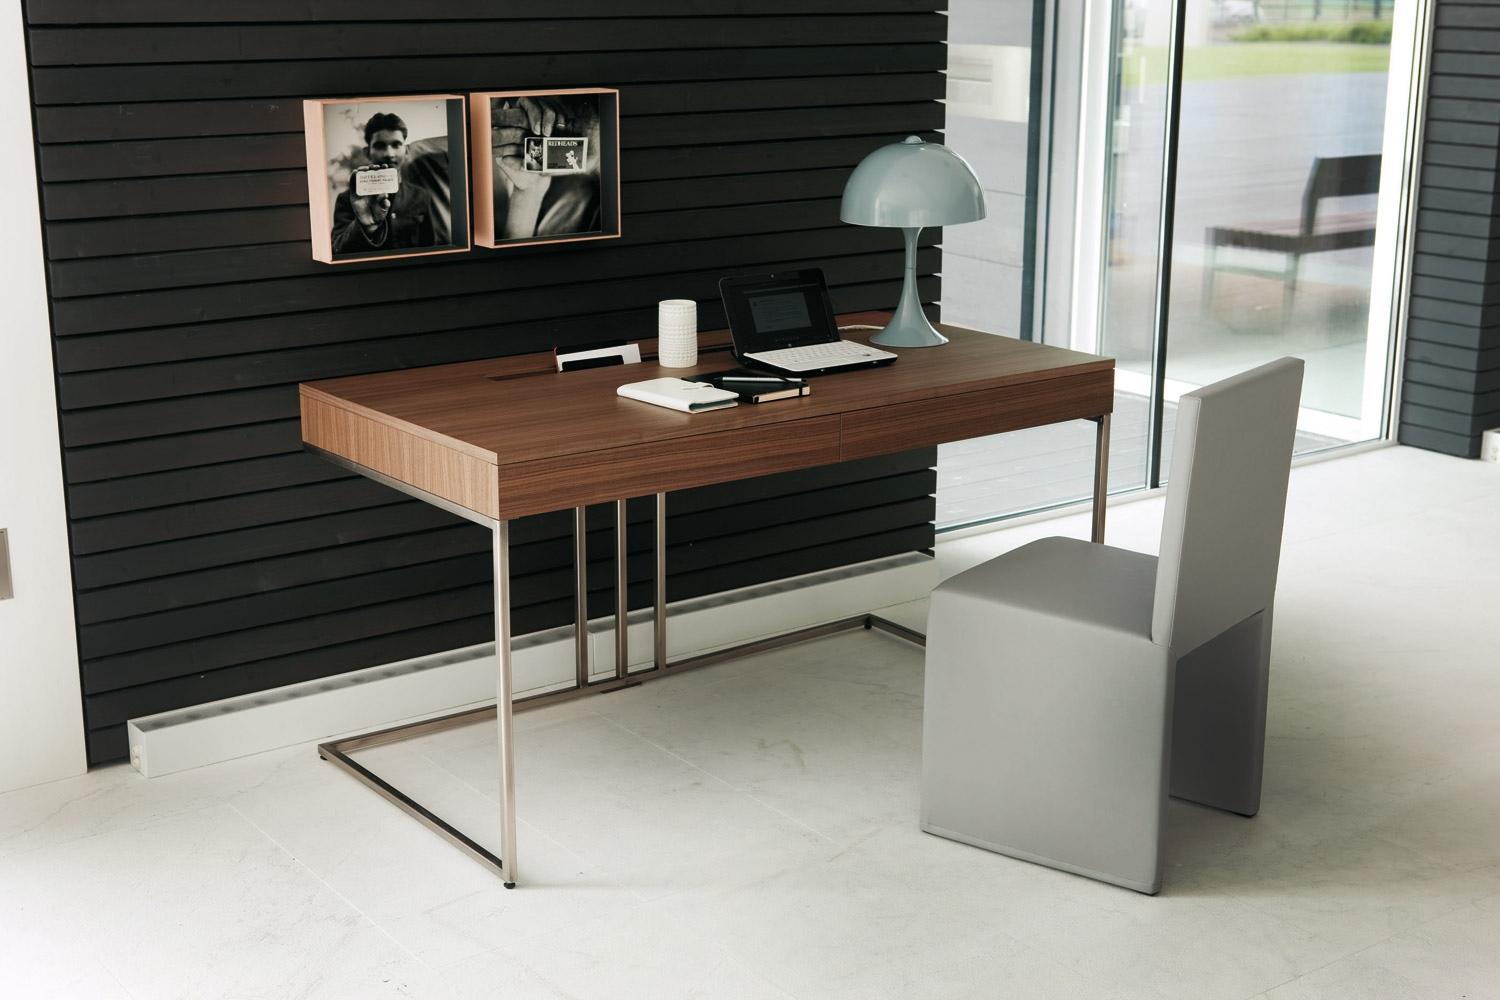 home office table designs.  designs in home office table designs m